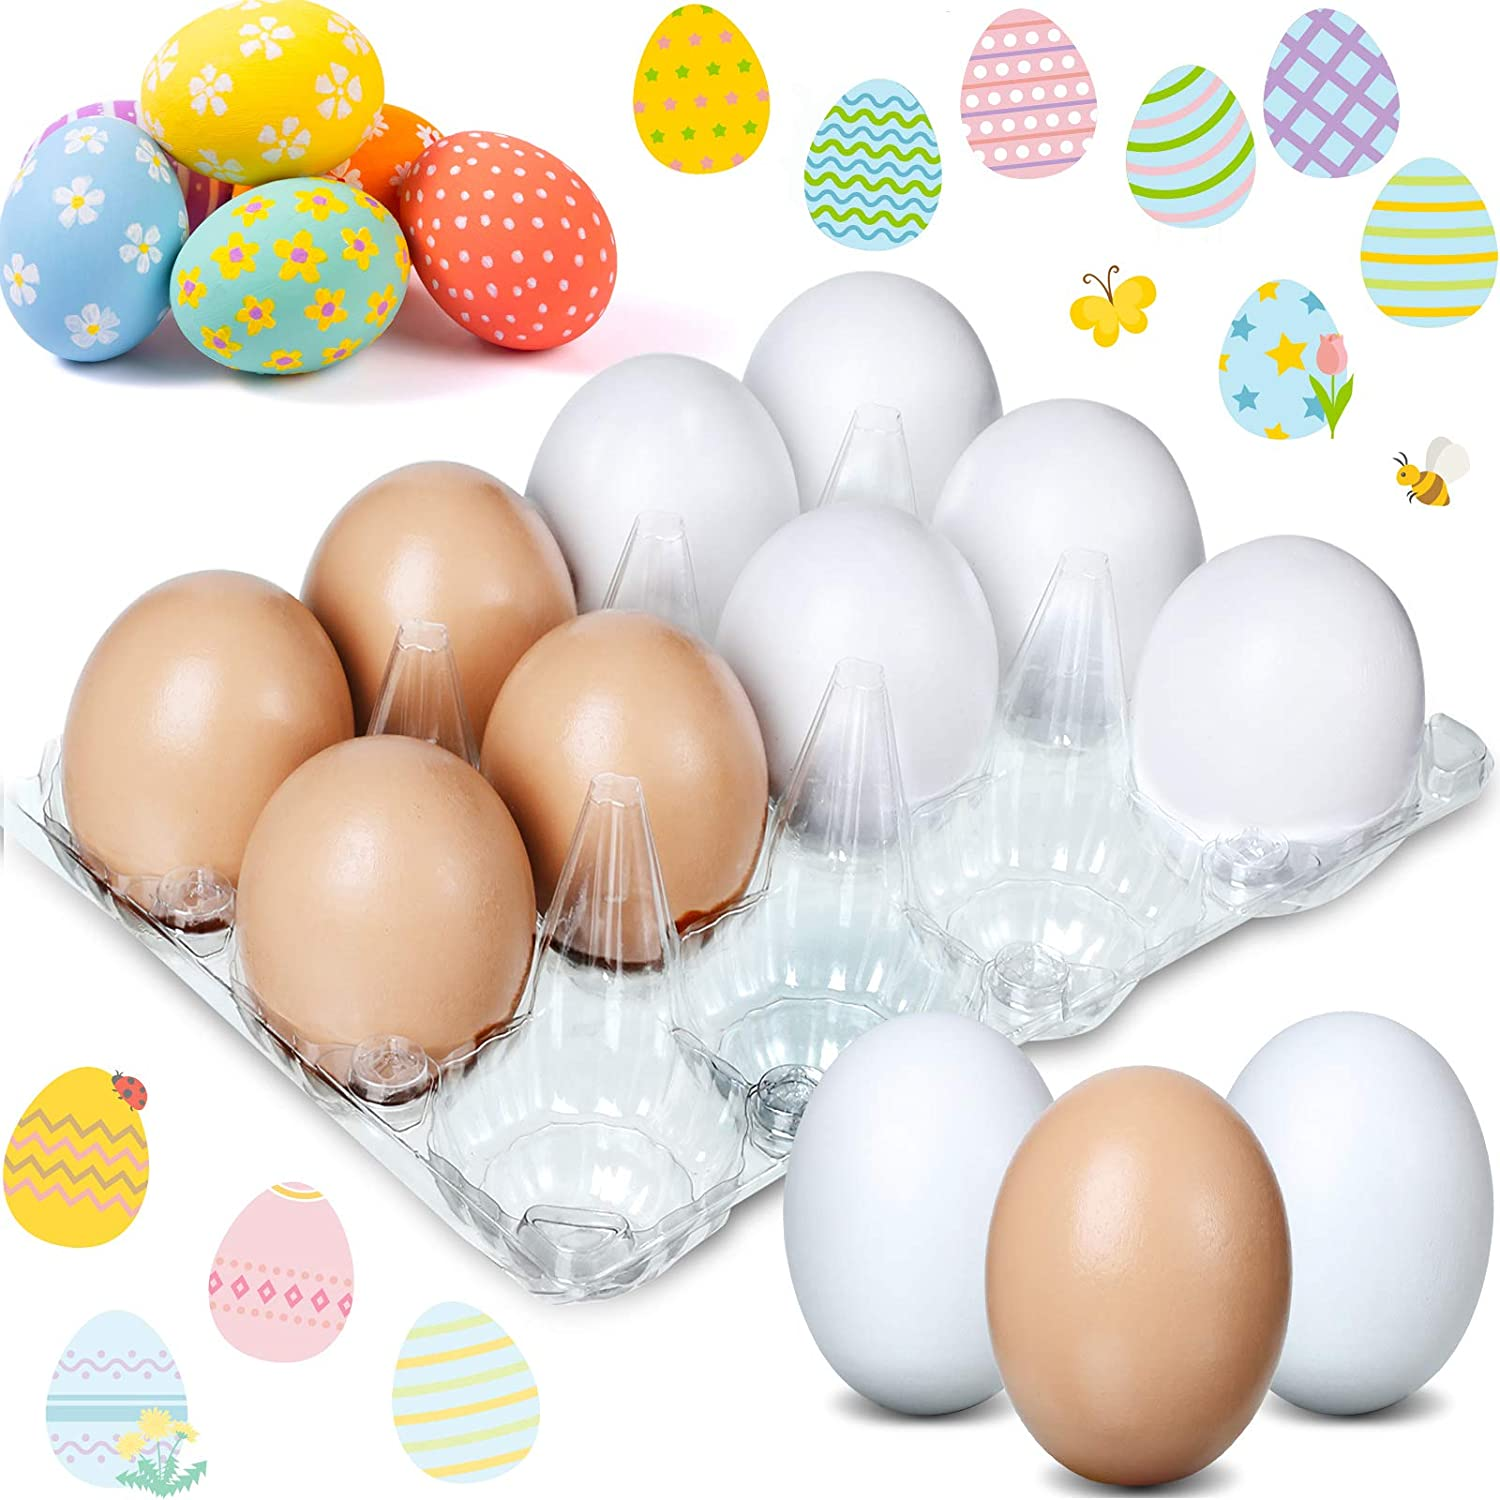 Sumind 12 Pieces Wooden Fake Eggs, DIY Easter Eggs, Faux Eggs Painting and Realistic Egg for Kitchen Game Food Toy, Easter Egg Hunt, Arts and Crafts Decor (Beige, White)